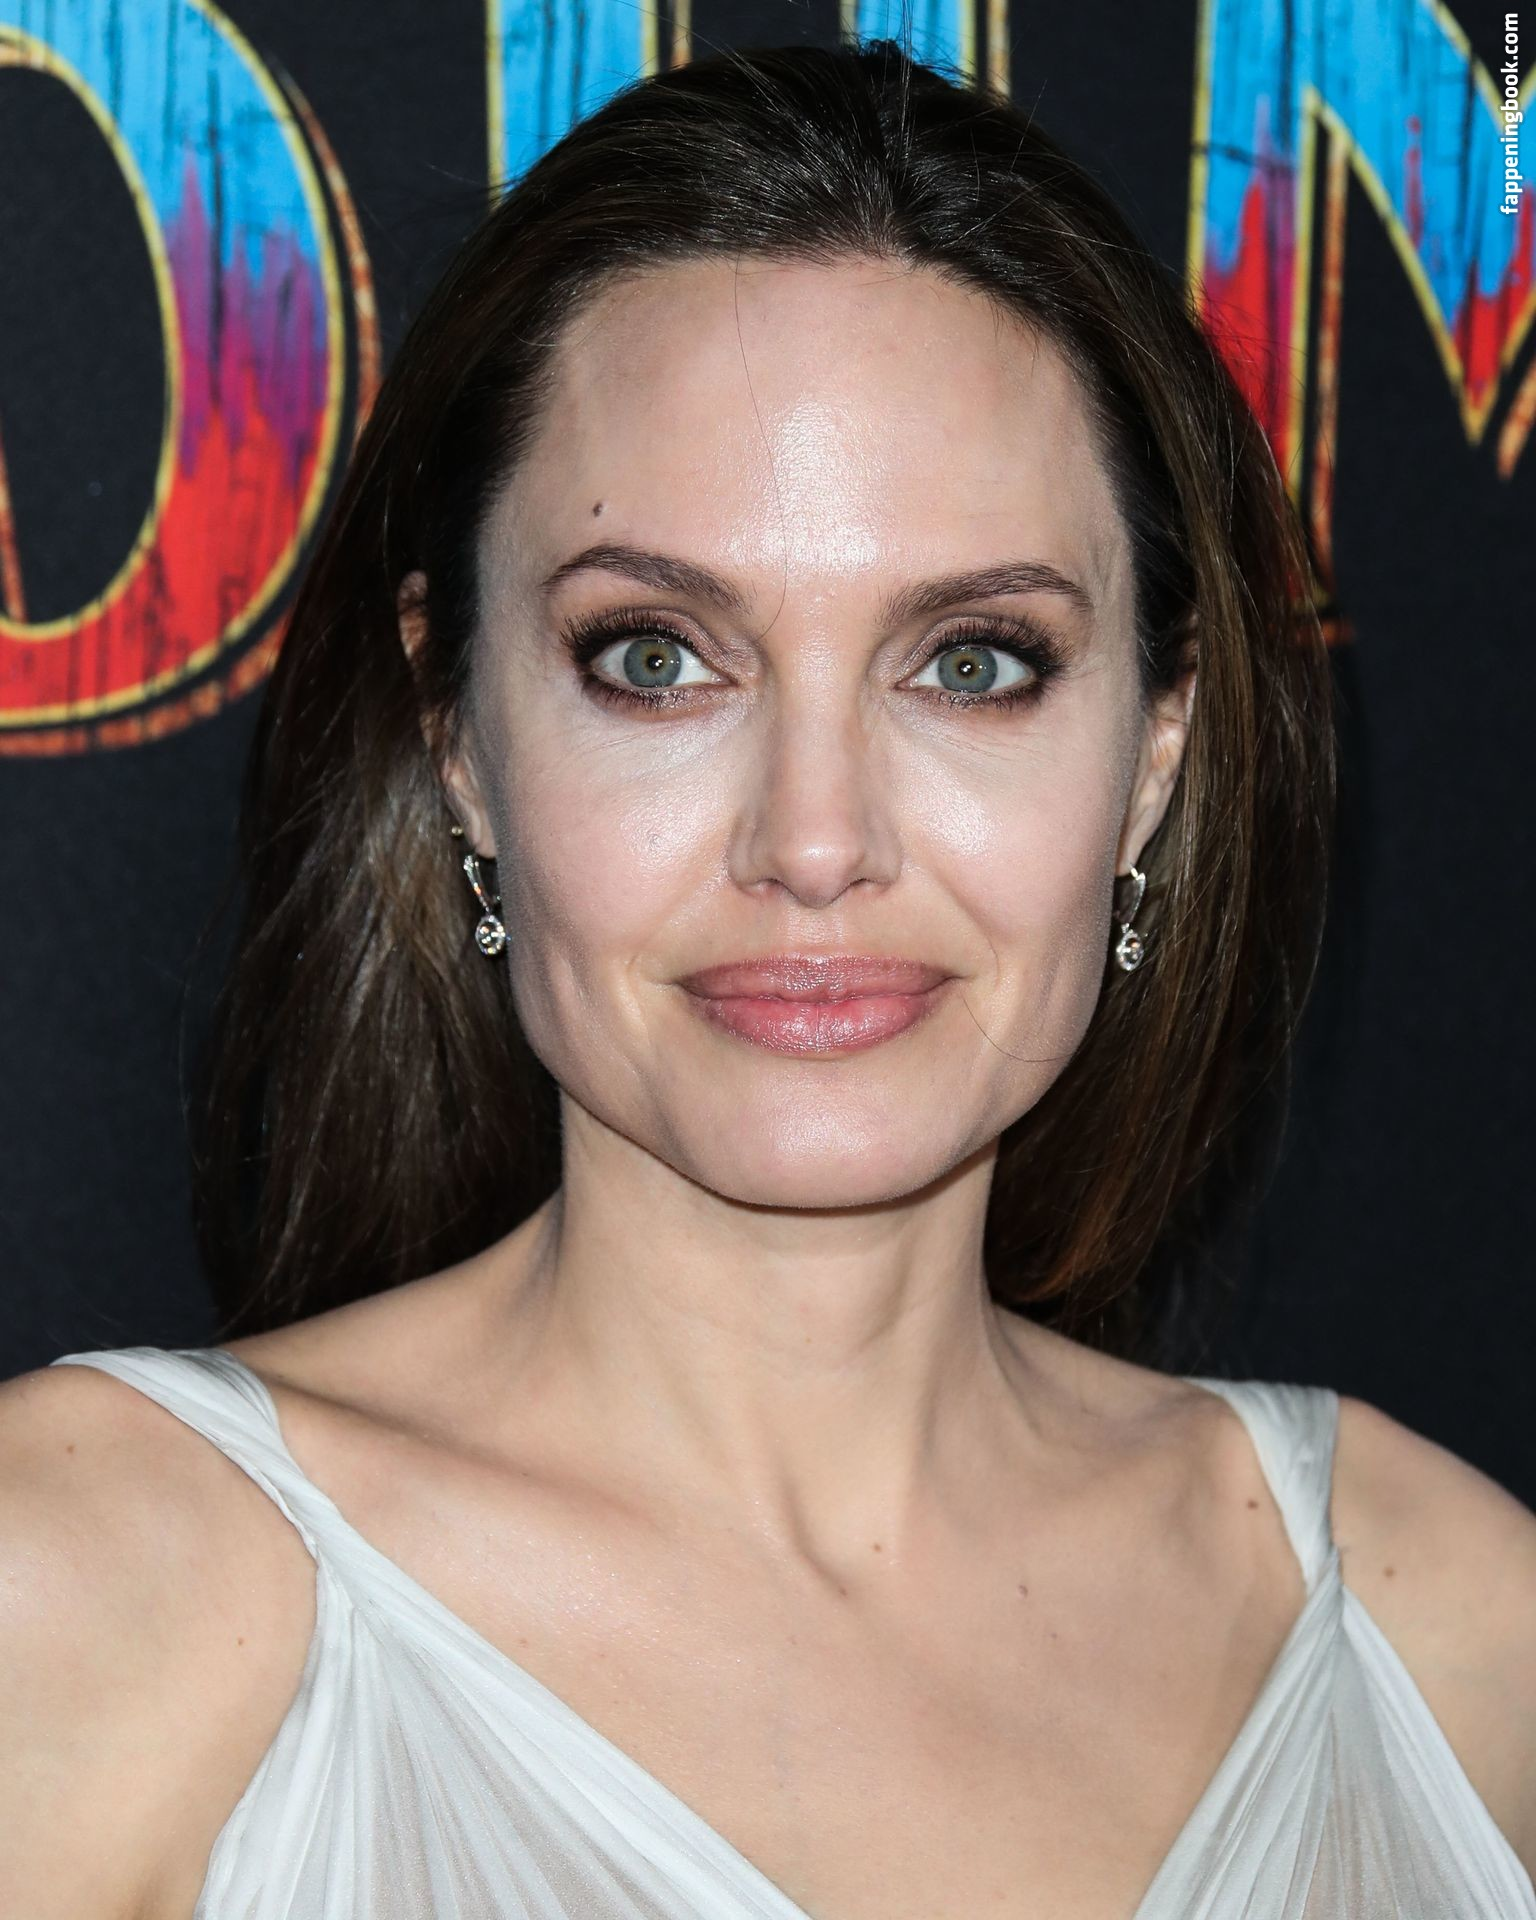 Topless Angelina Jolie Nude Hot Free Pictures